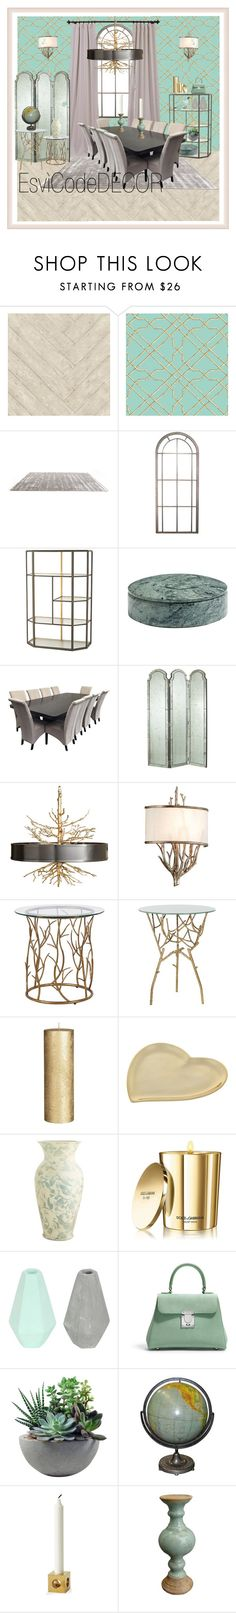 """""""Dining"""" by silvia-esvicode on Polyvore featuring interior, interiors, interior design, Casa, home decor, interior decorating, Andrew Martin, York Wallcoverings, ELK Lighting e Wrong for Hay"""